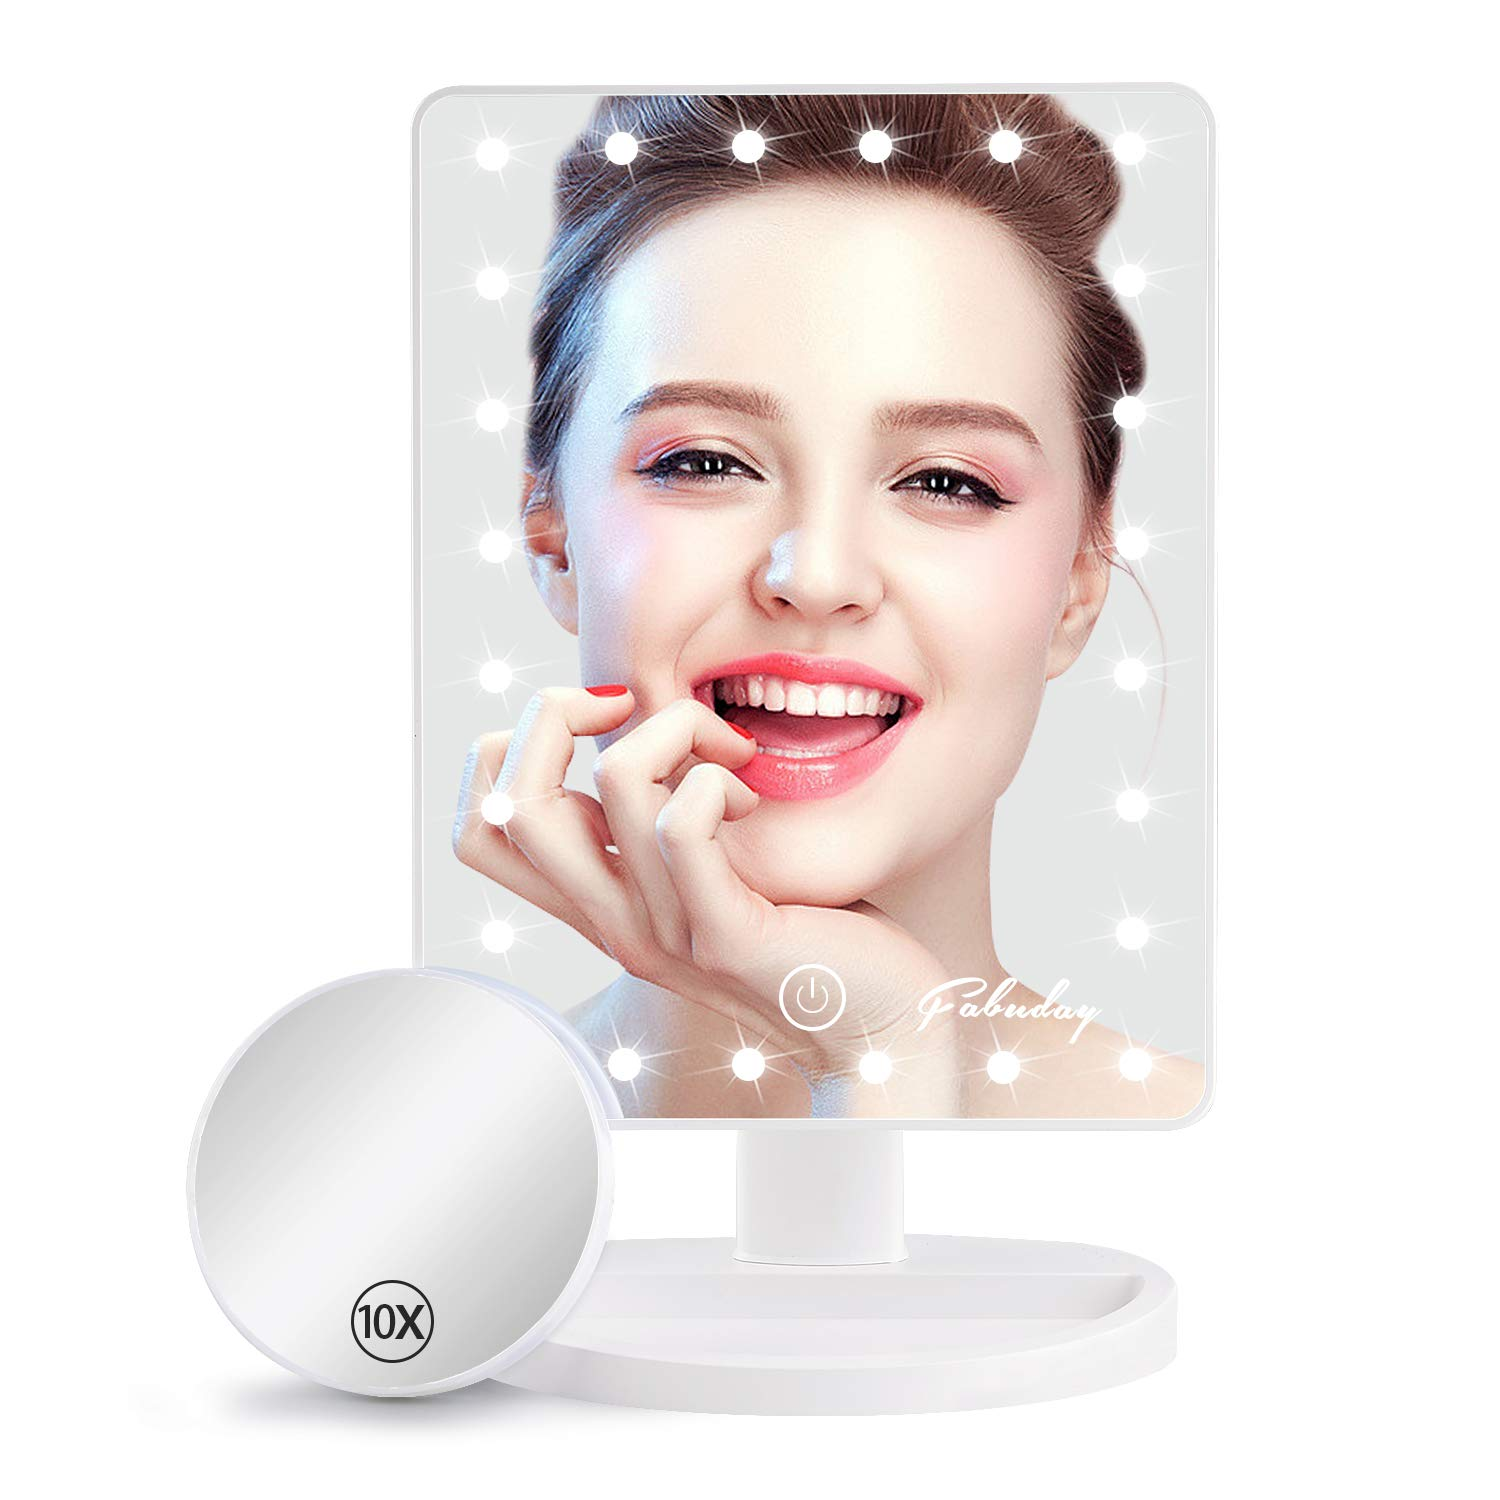 Makeup Mirror with Lights, Lighted Makeup Mirror with Detachable 10X Magnification, Touch Screen and Light Adjustable, 180 Rotation, Color Boxed, White